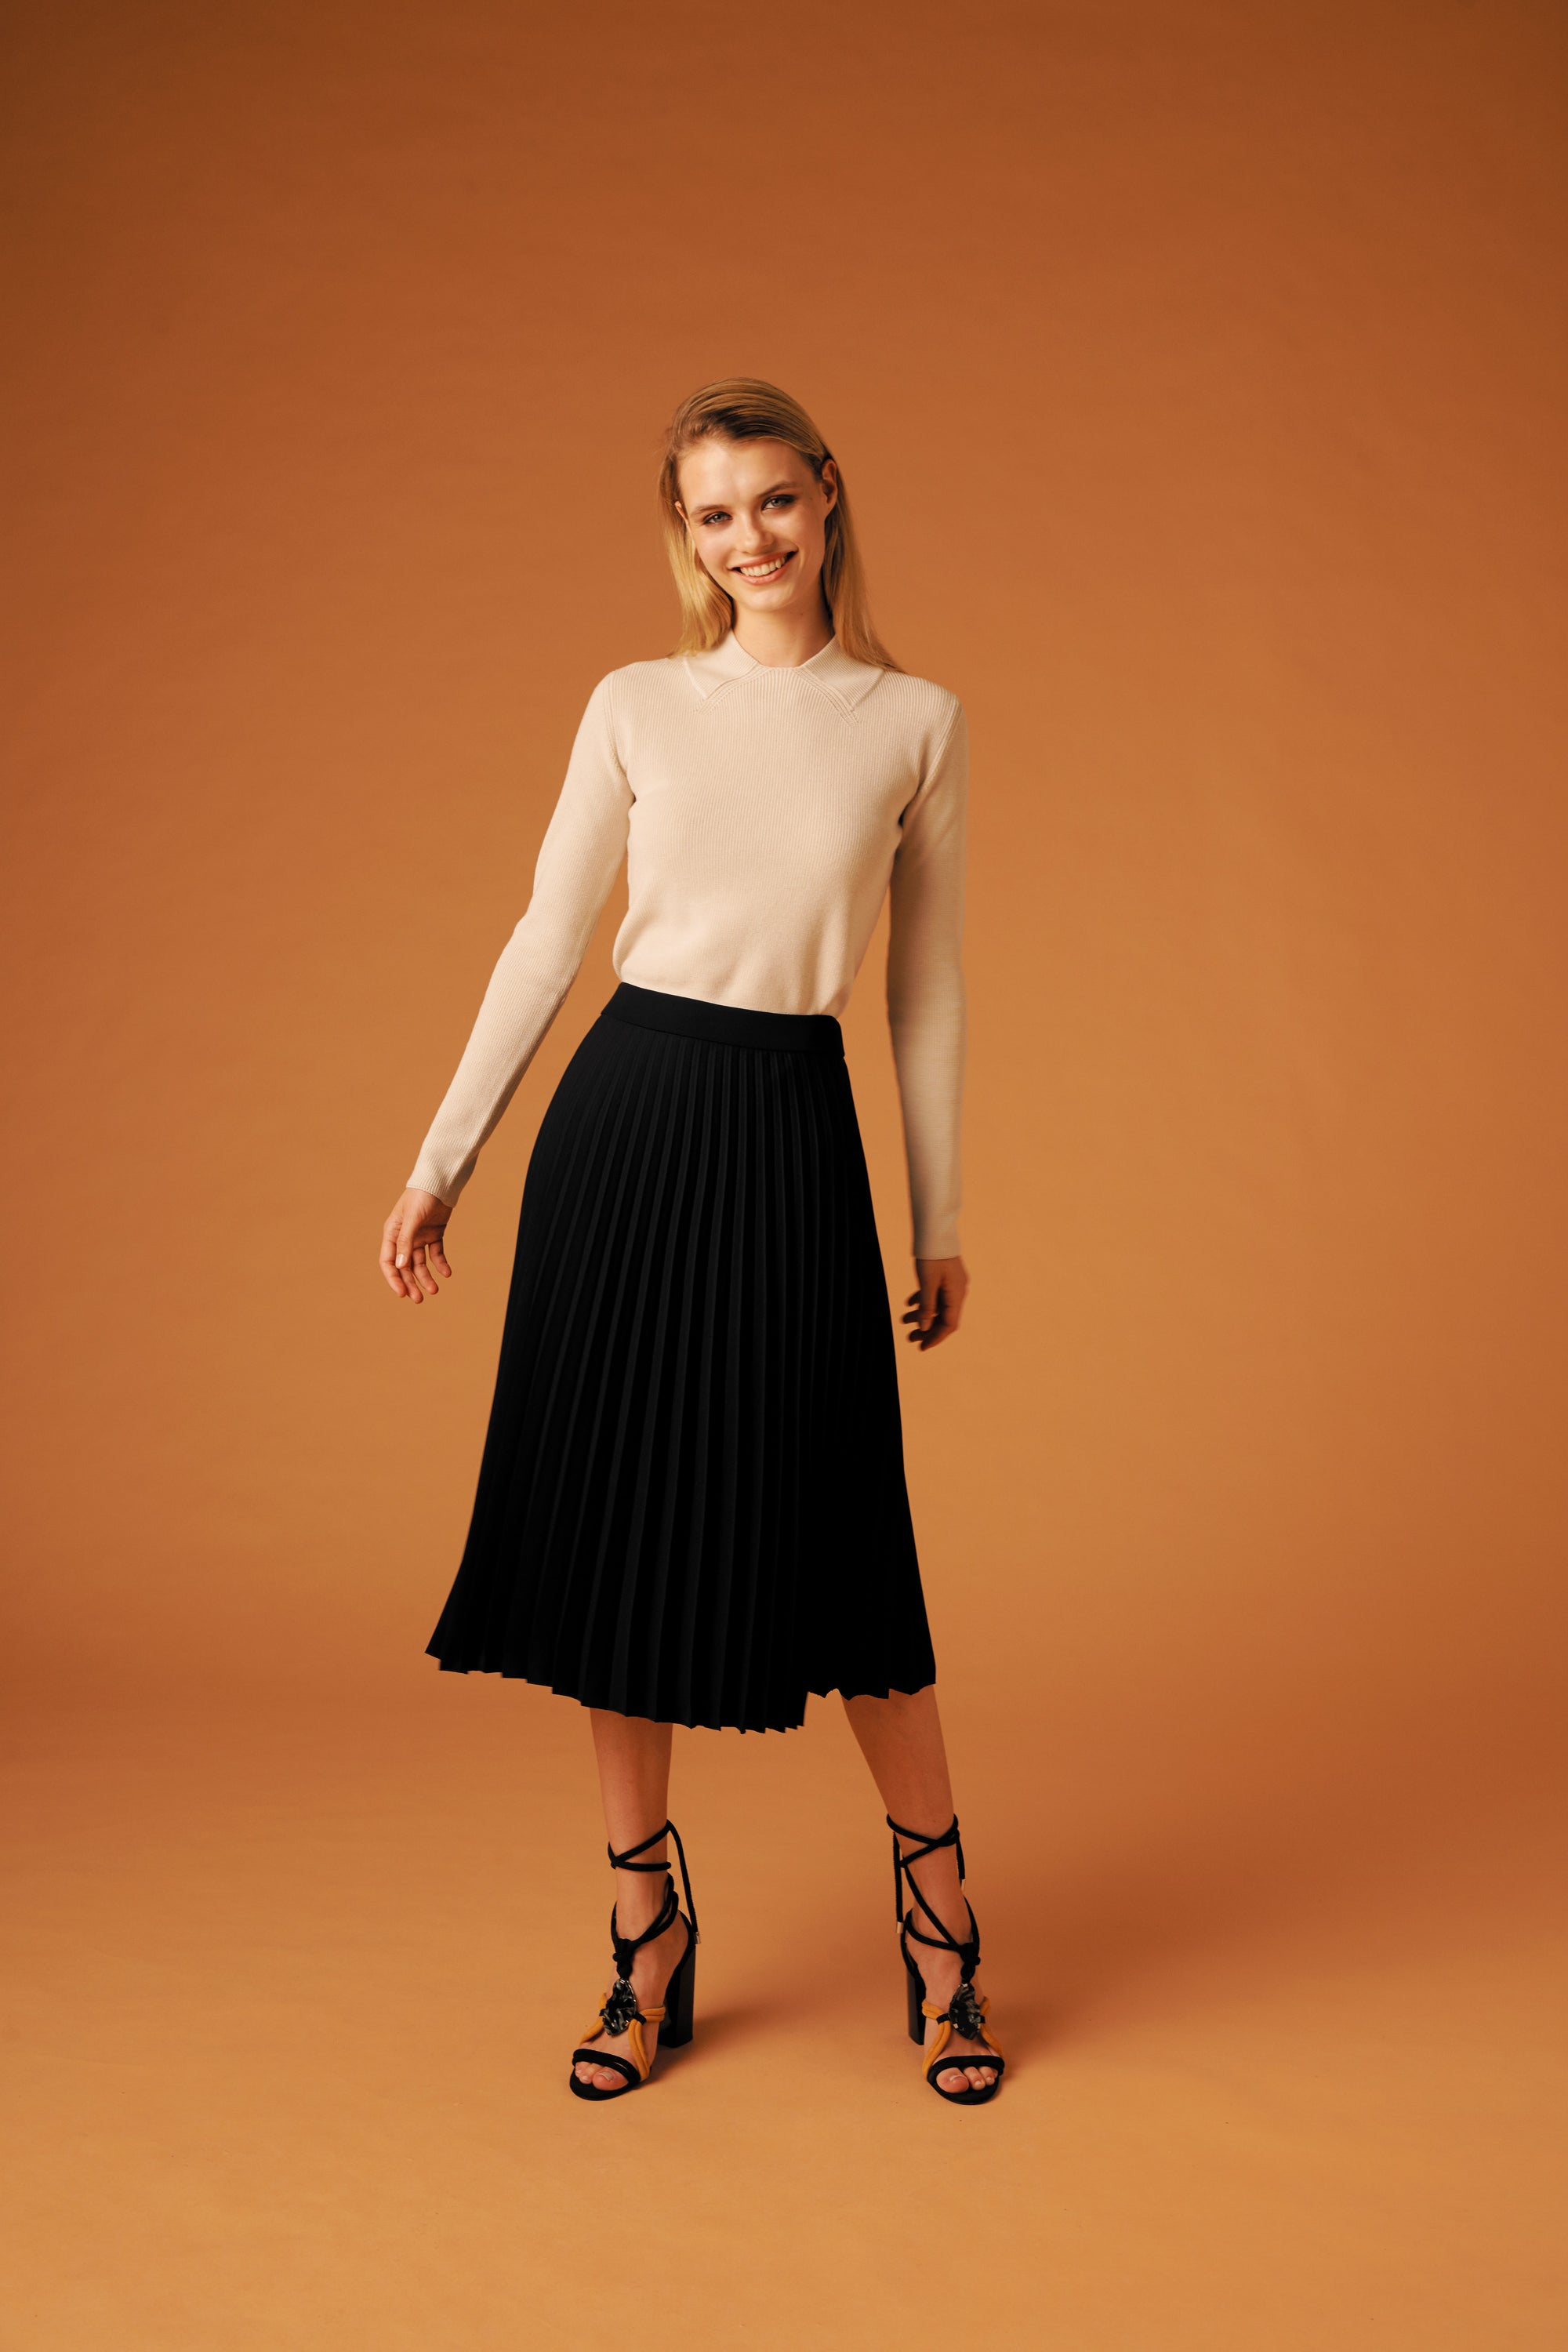 The Sophie Germain Skirt